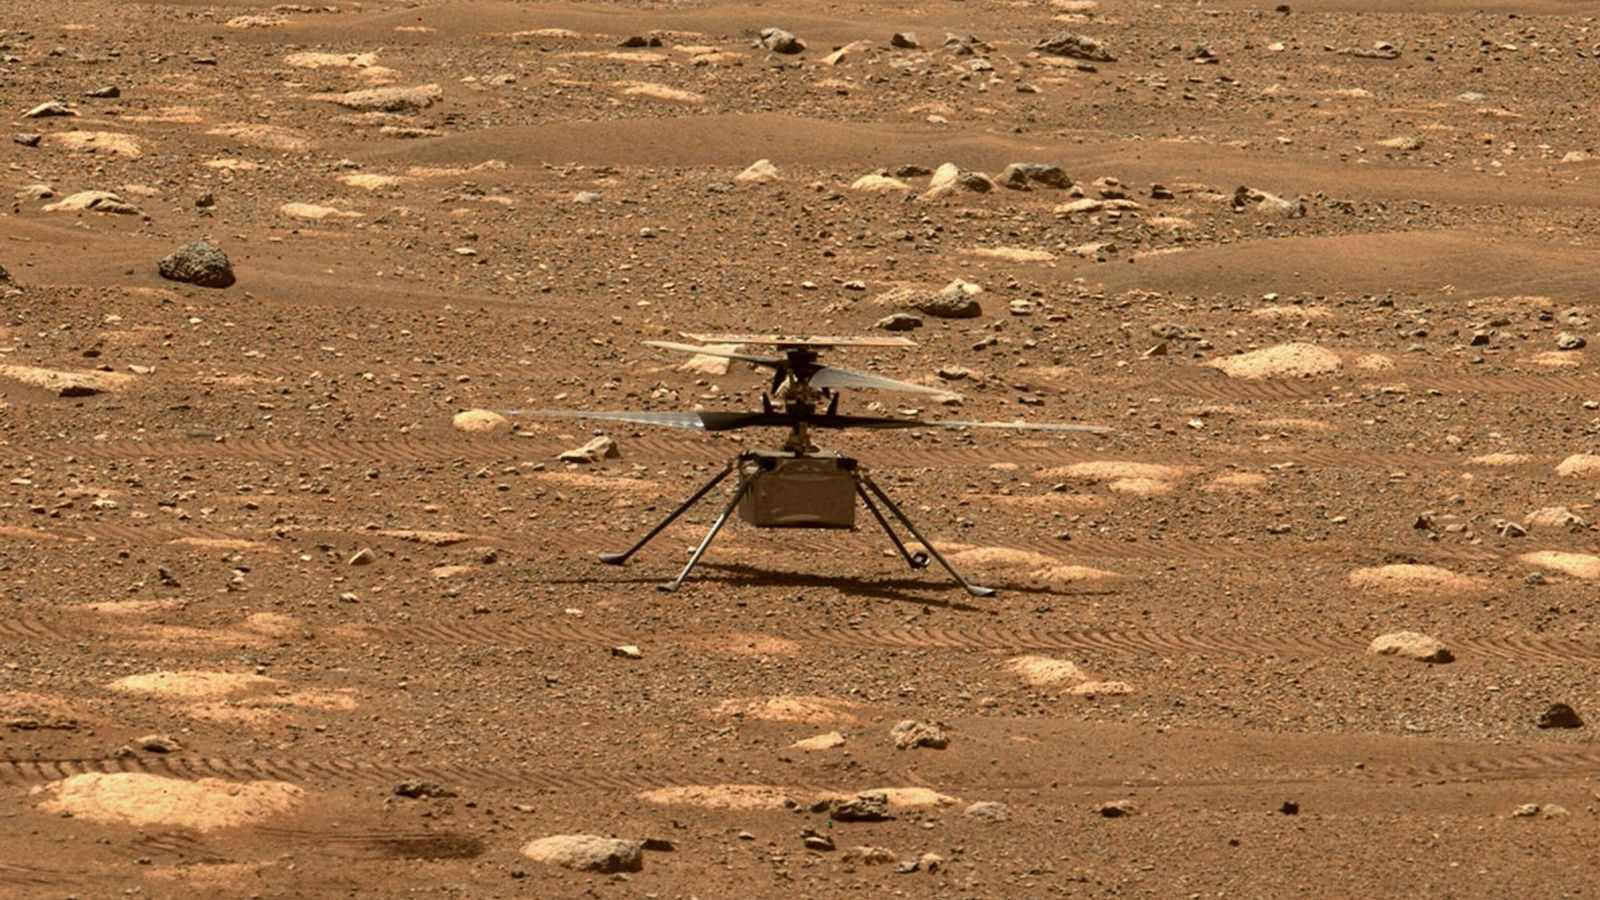 Mars Ingenuity Grounded for Now